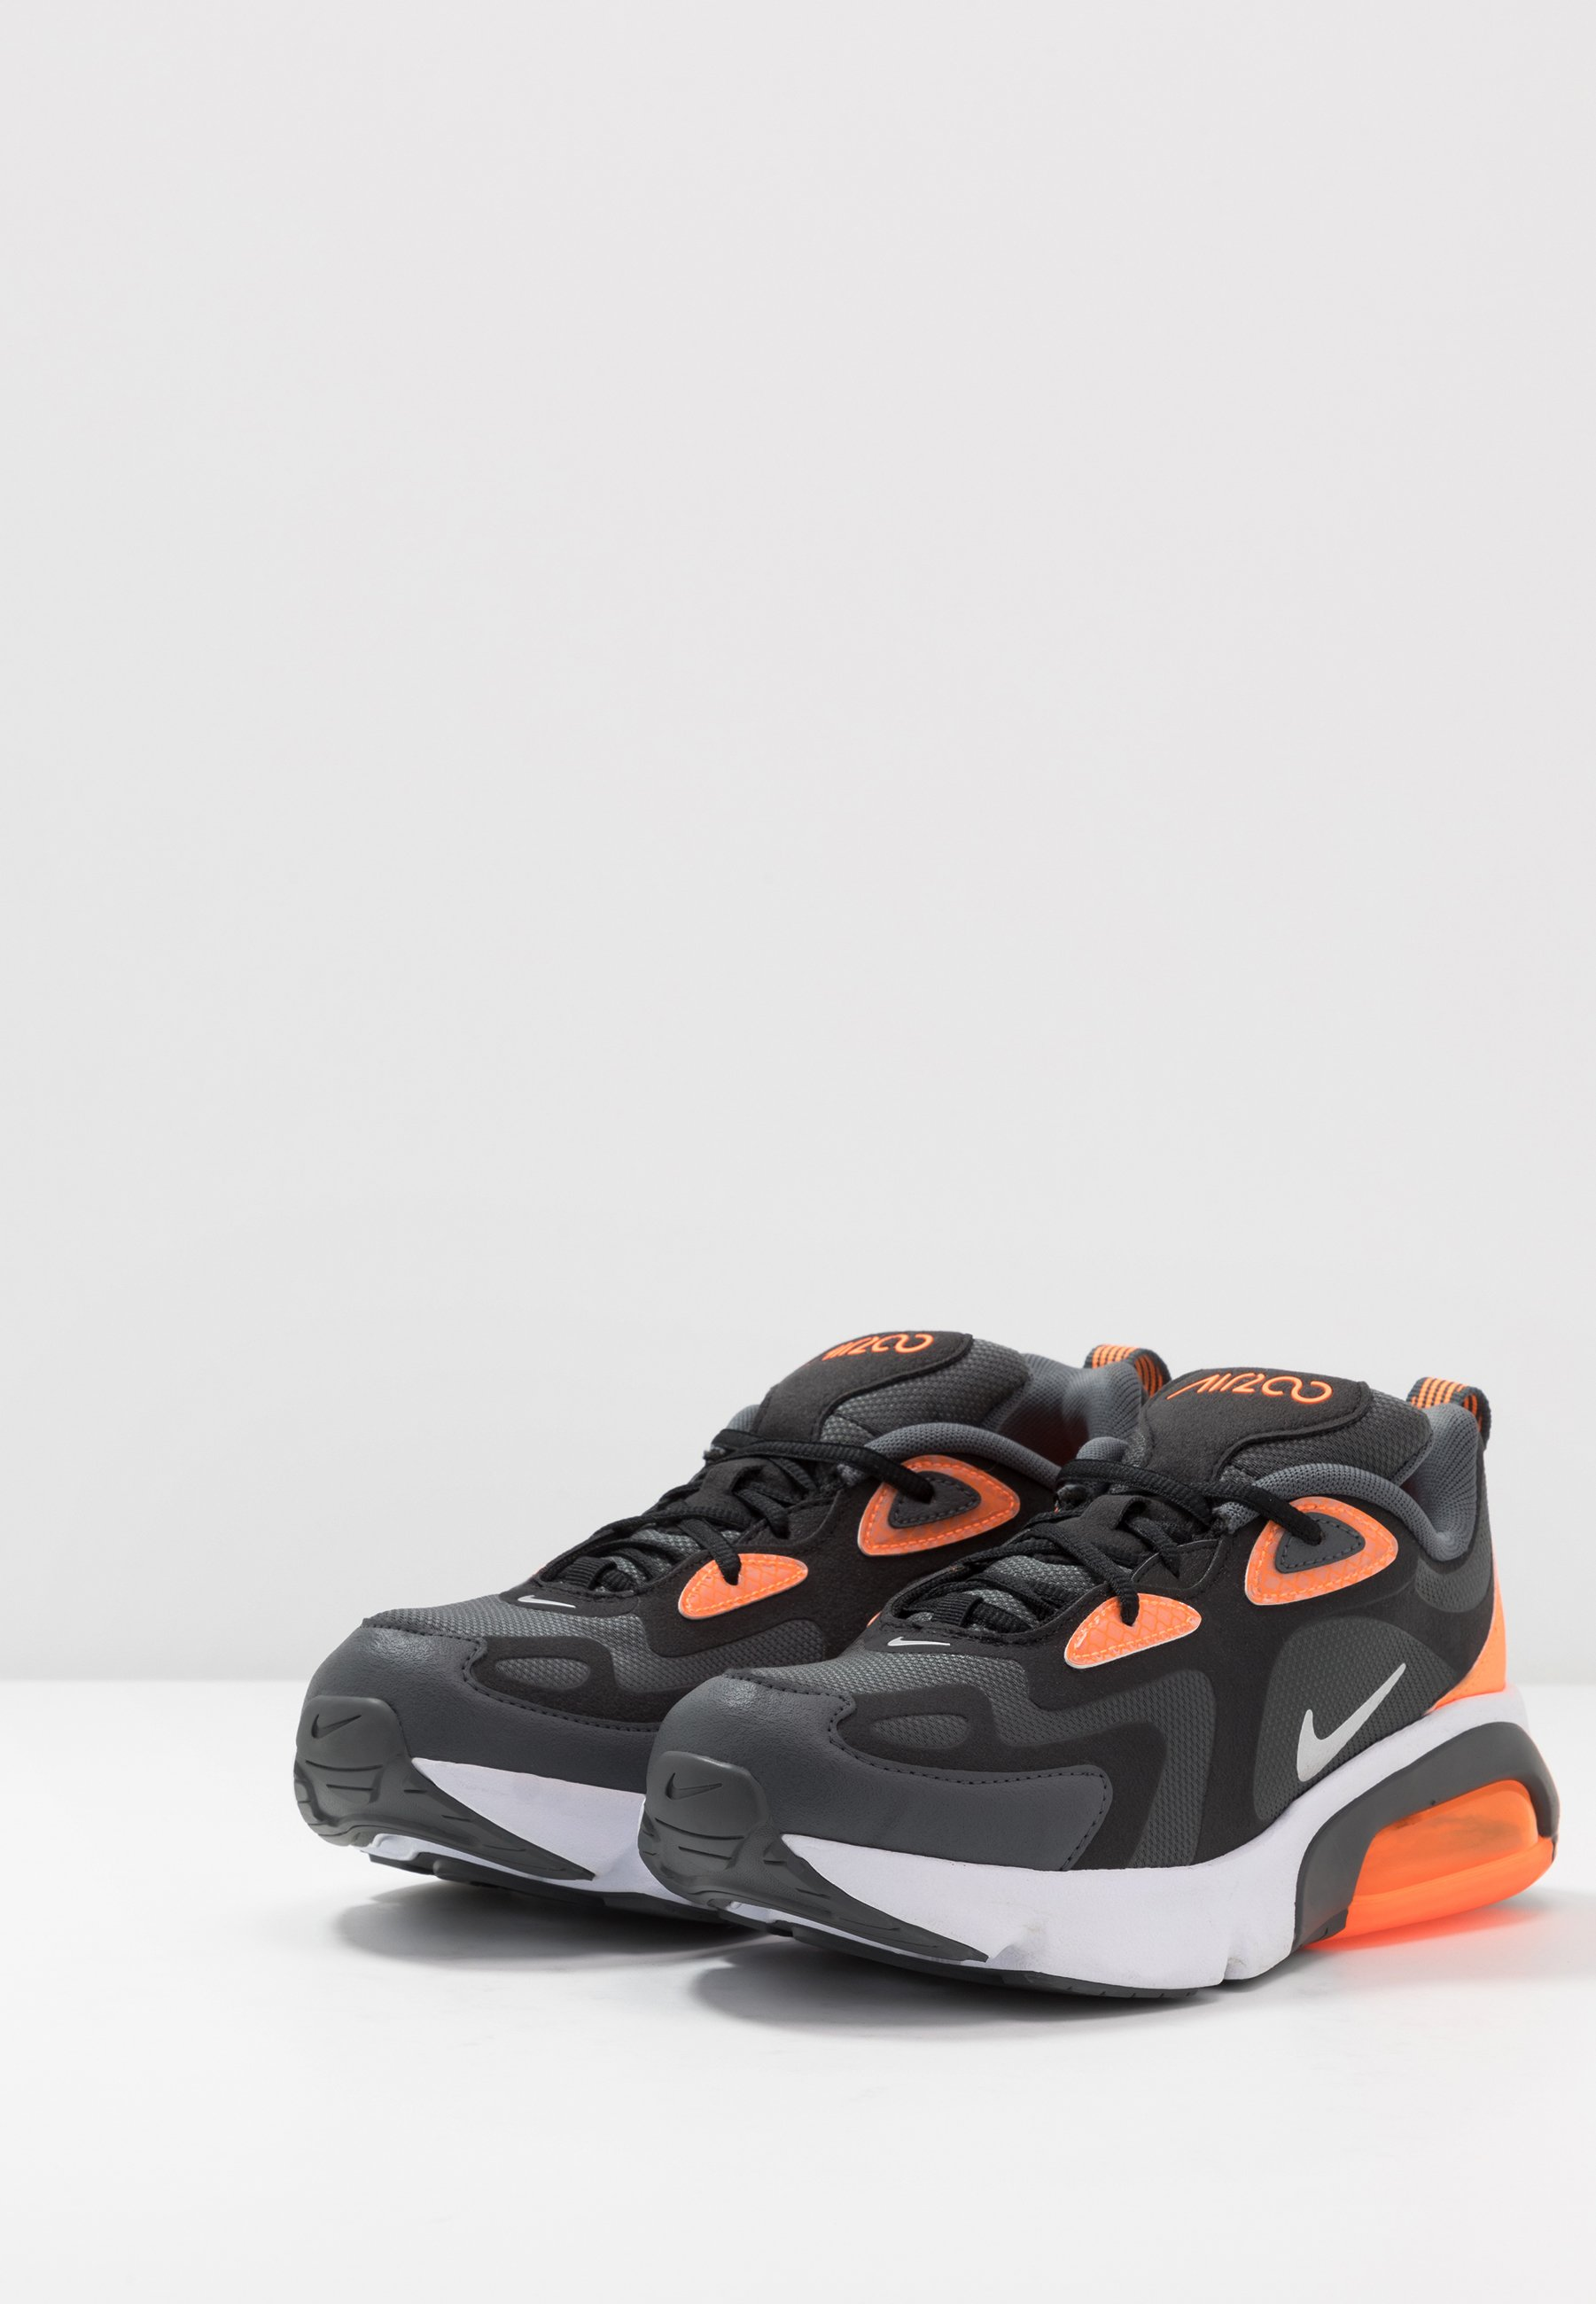 AIR MAX 200 WTR Sneakers dark greymetallic silverblacktotal orange